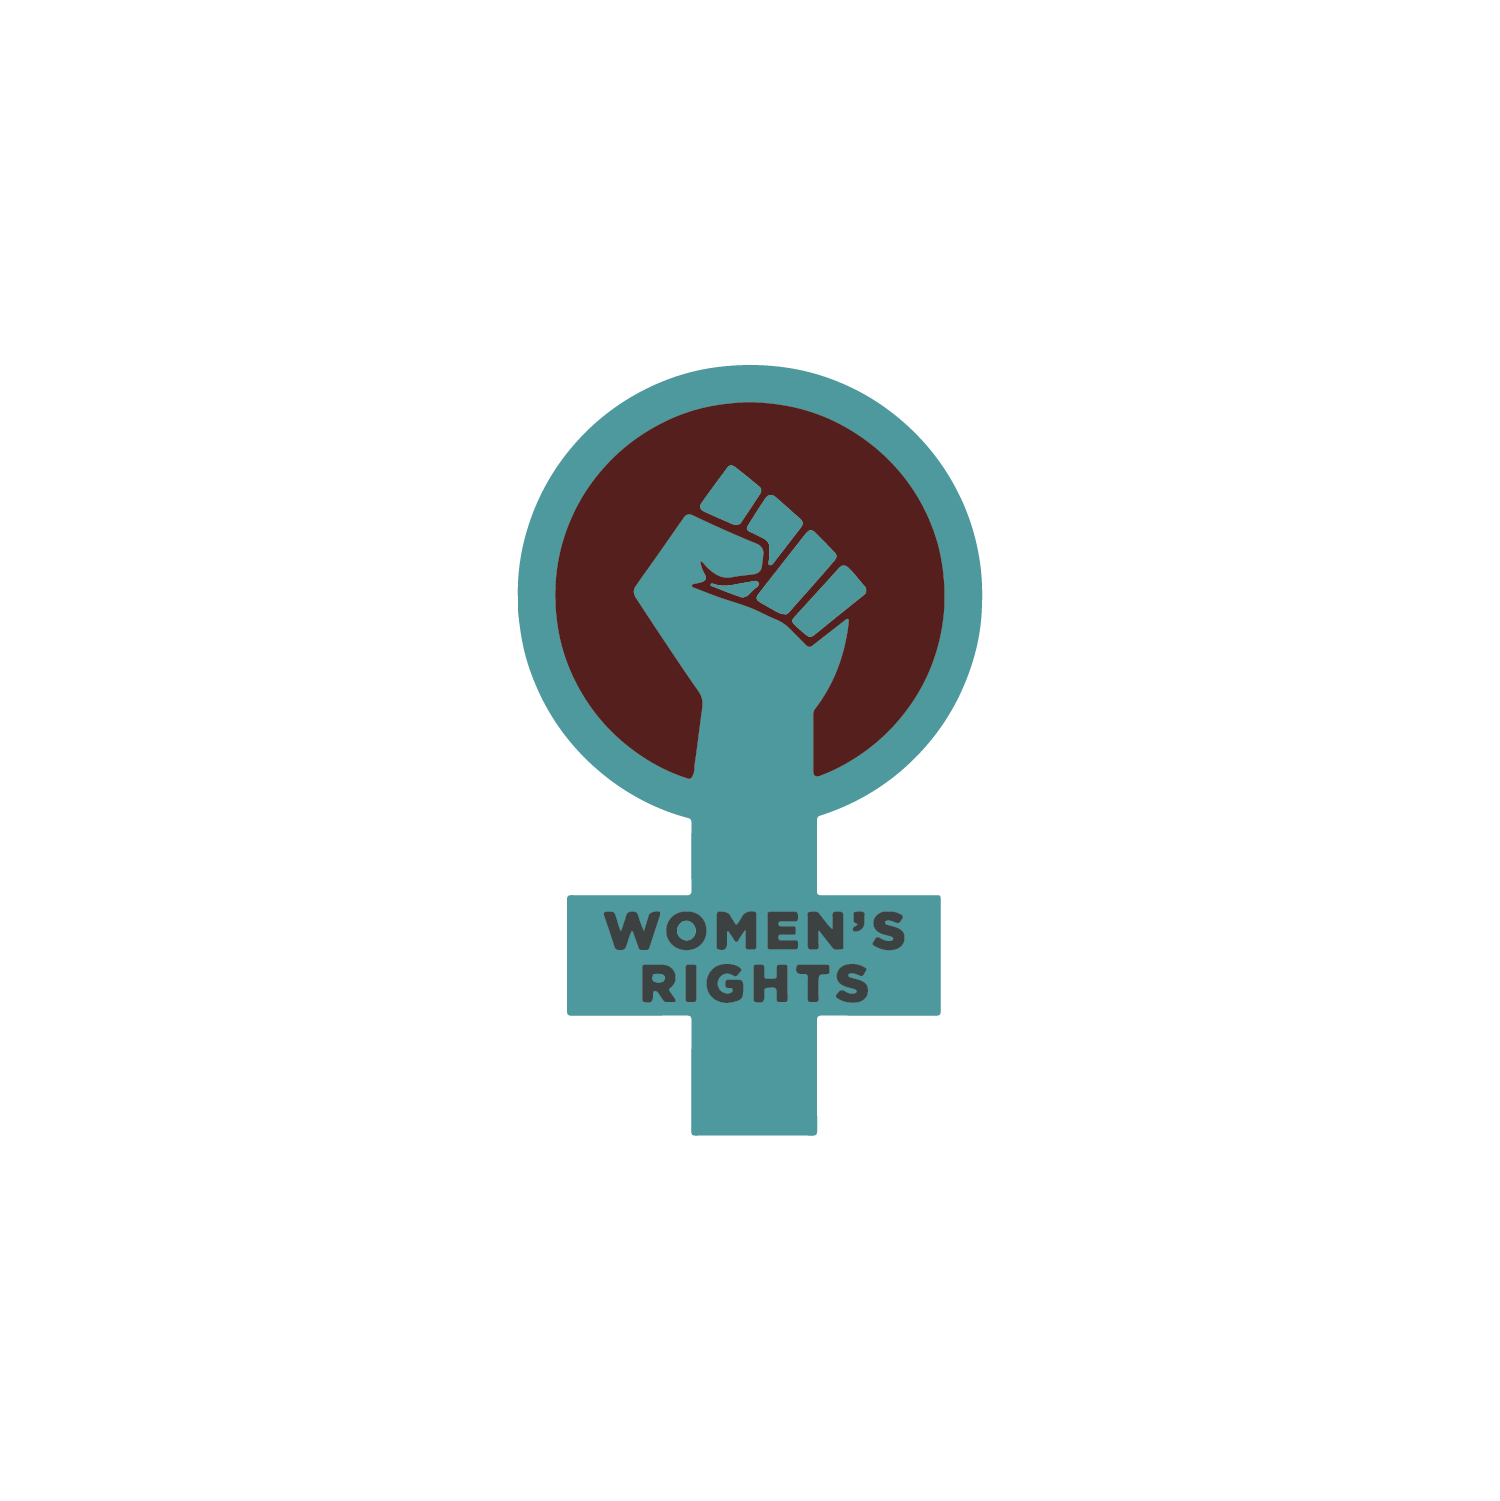 Women's Rights Campaign